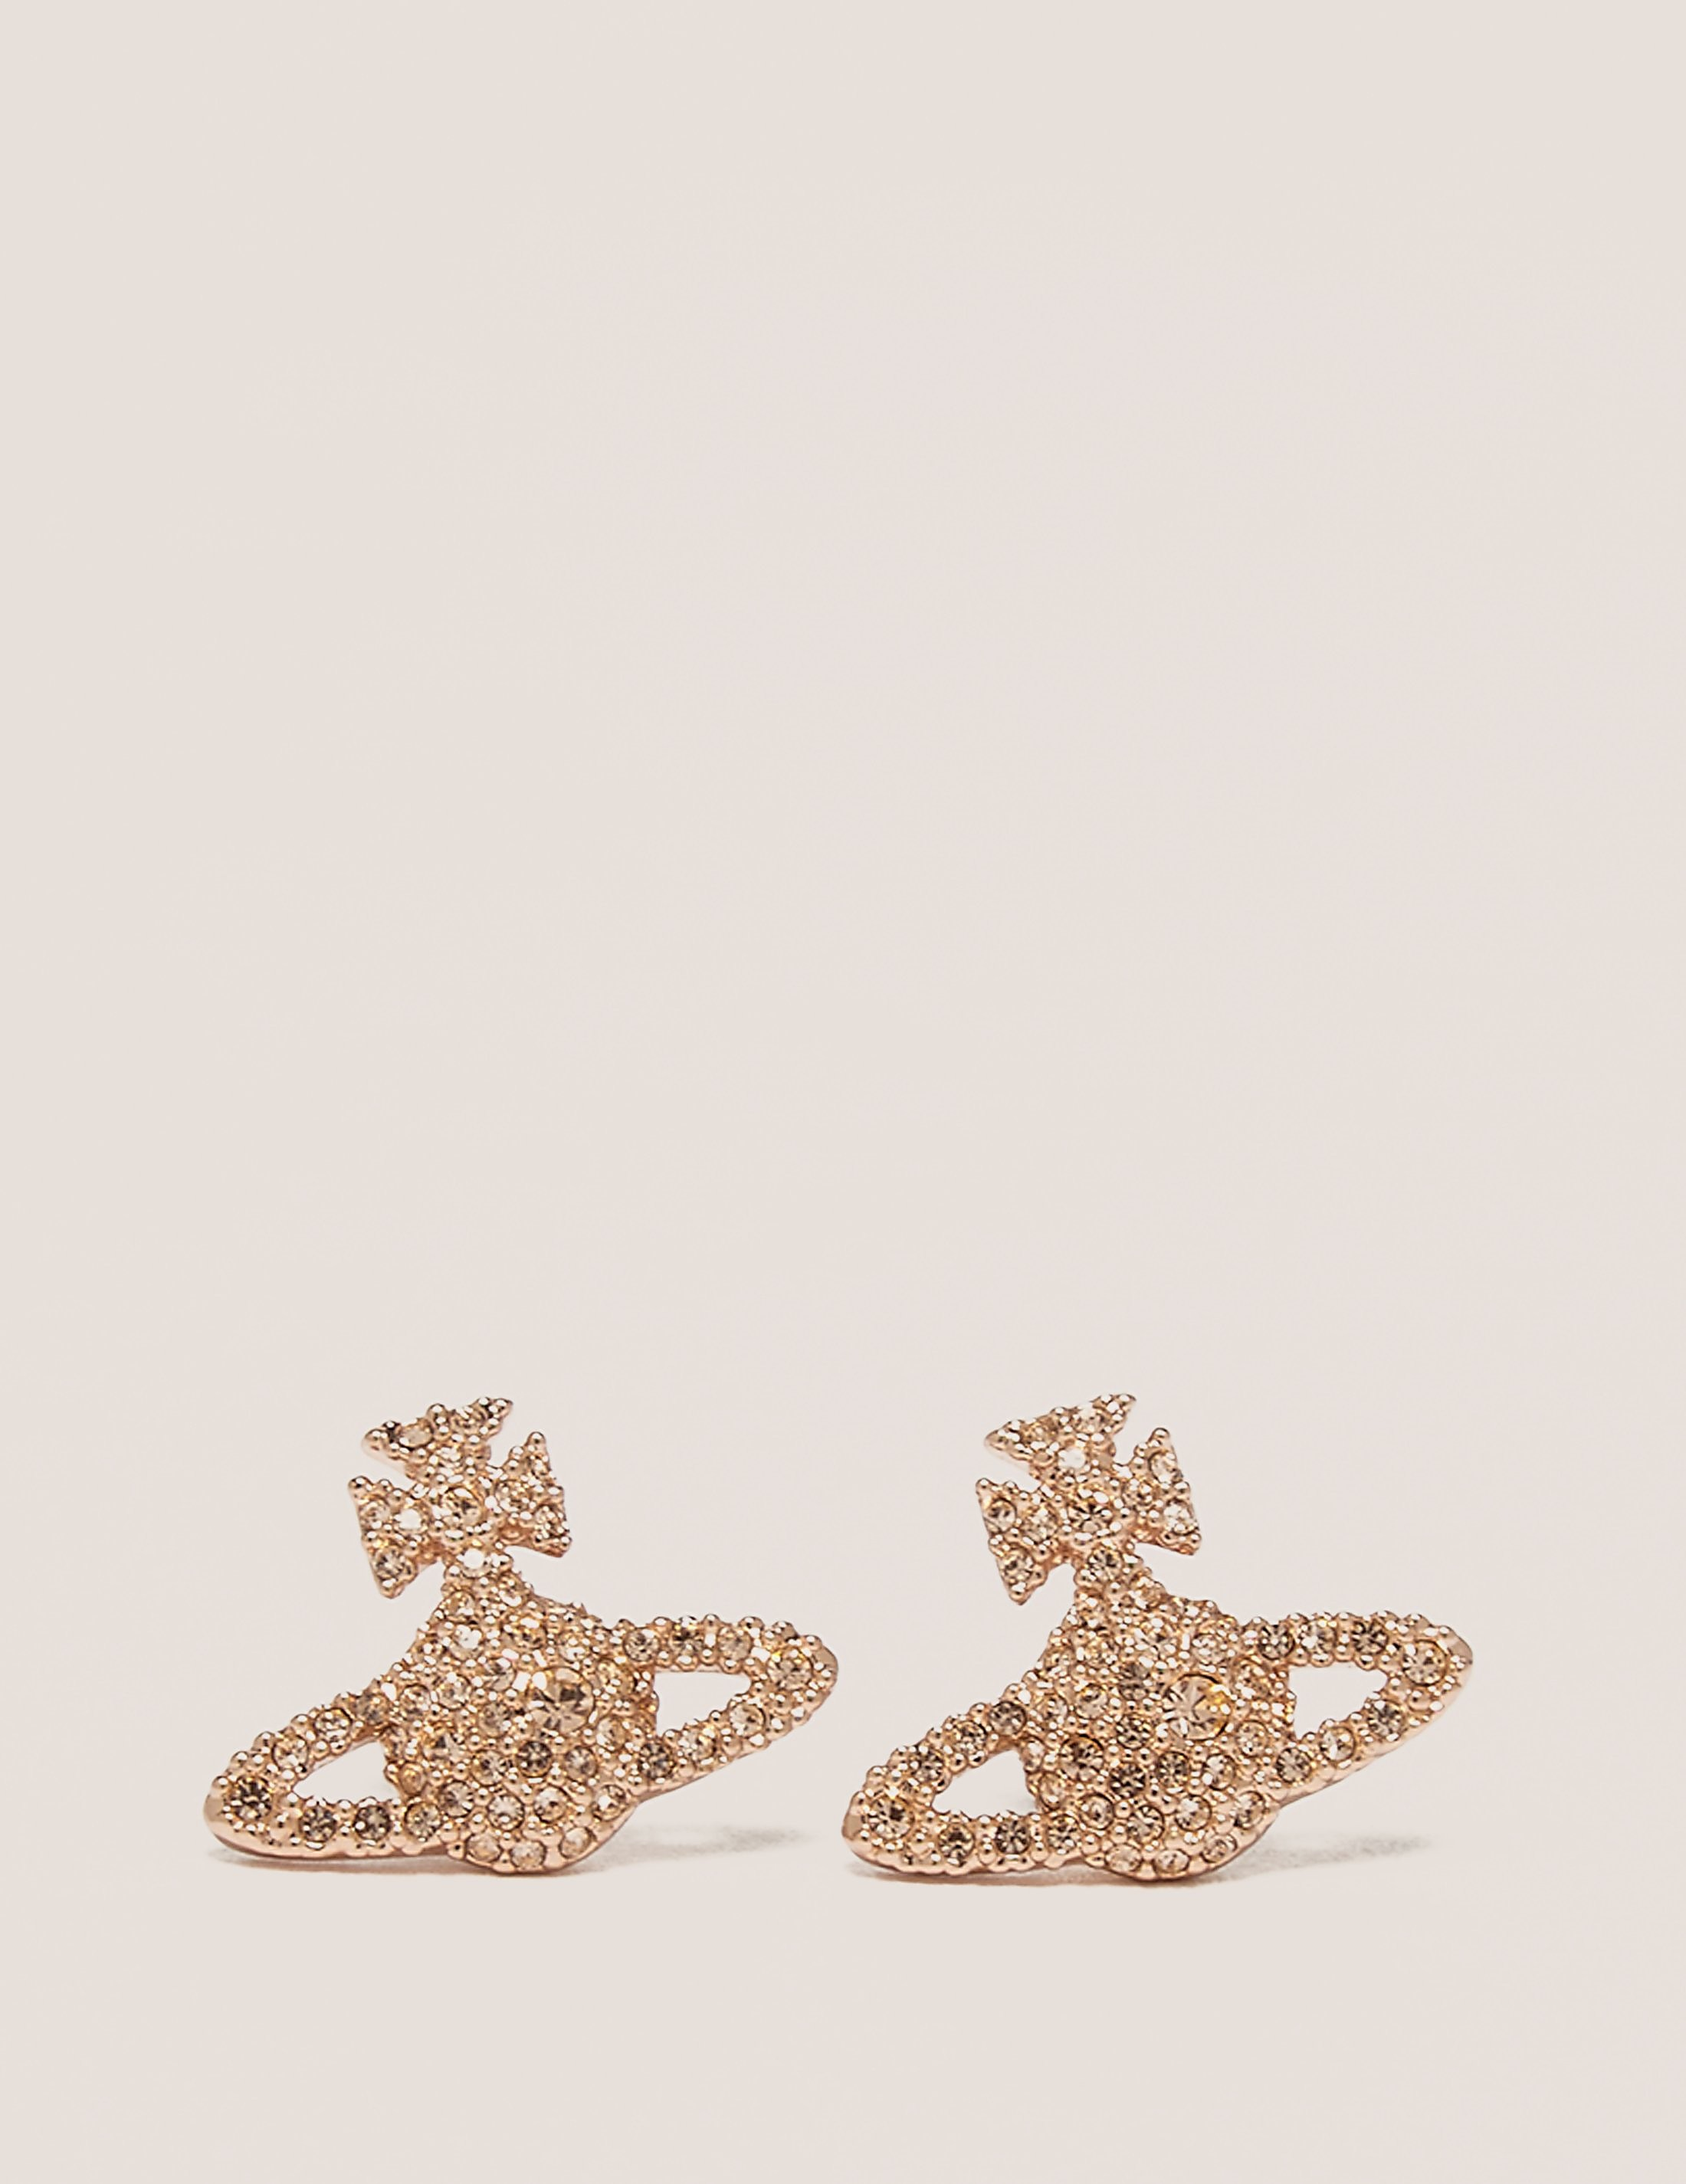 Vivienne Westwood Grace Stud Earrings